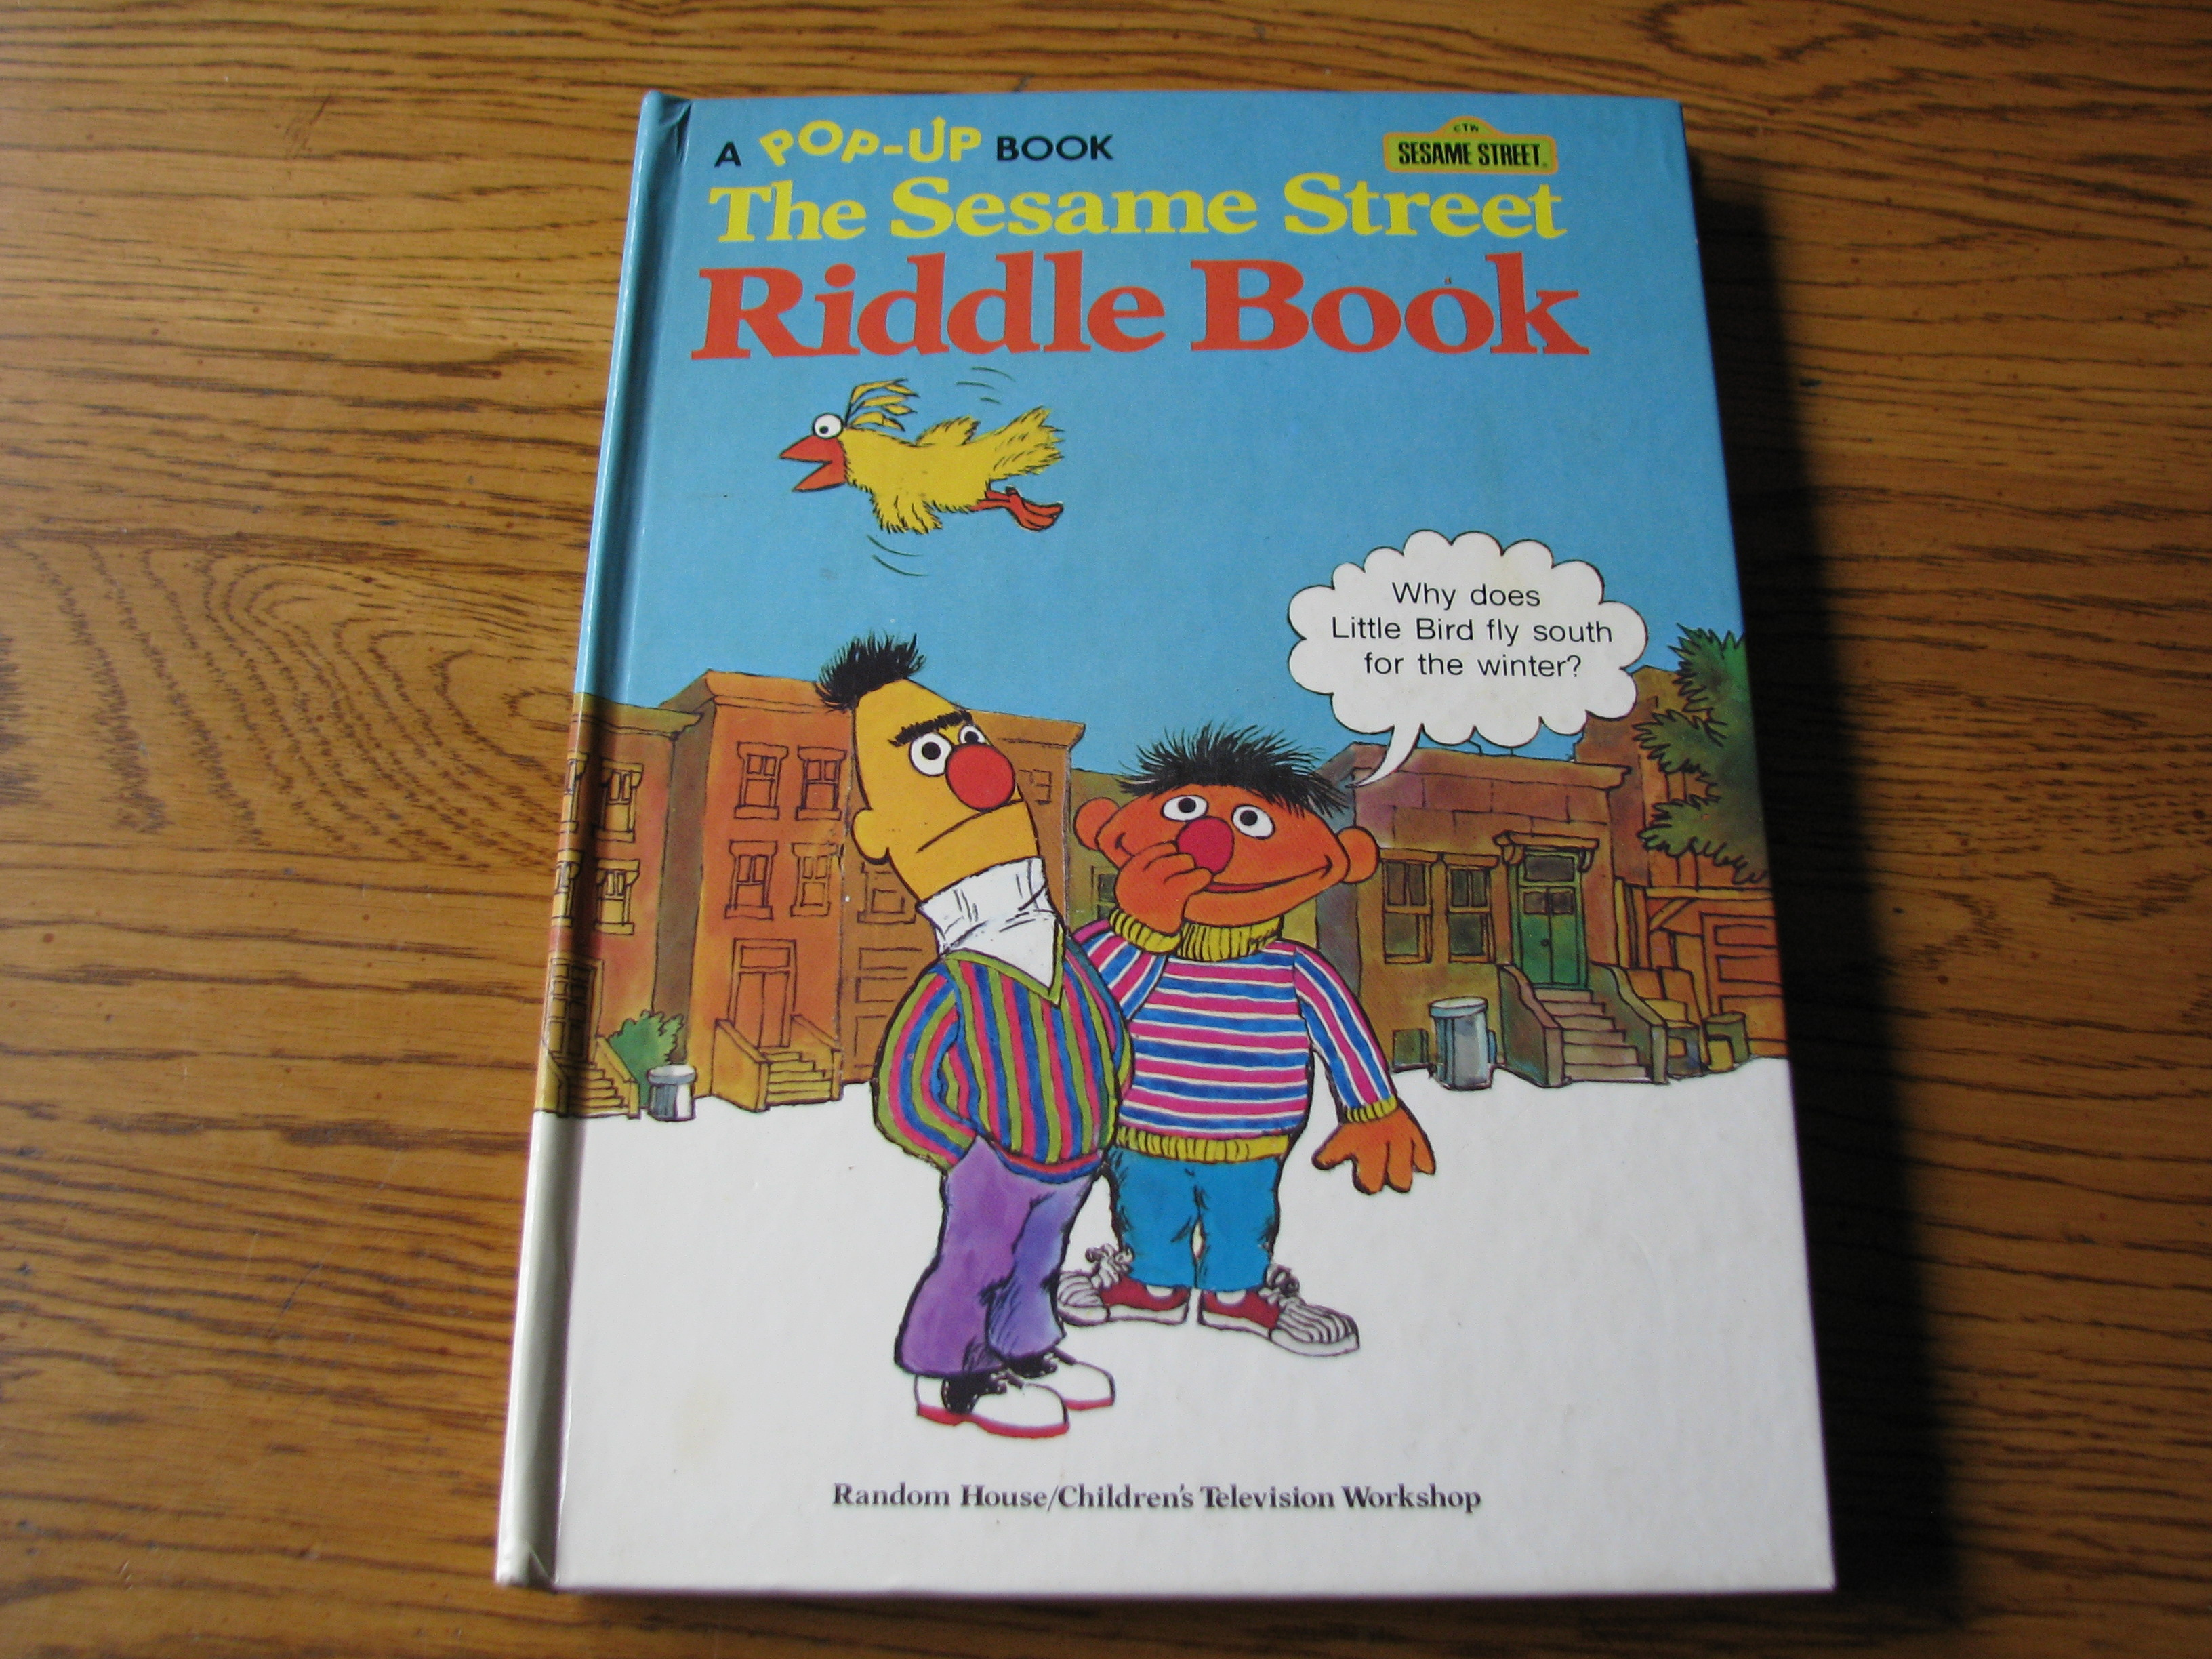 Pop Up Book Cover A Rare Vintage 1977 Pop Up Book The Sesame Street Riddle Book Random House Children S Television Workshop